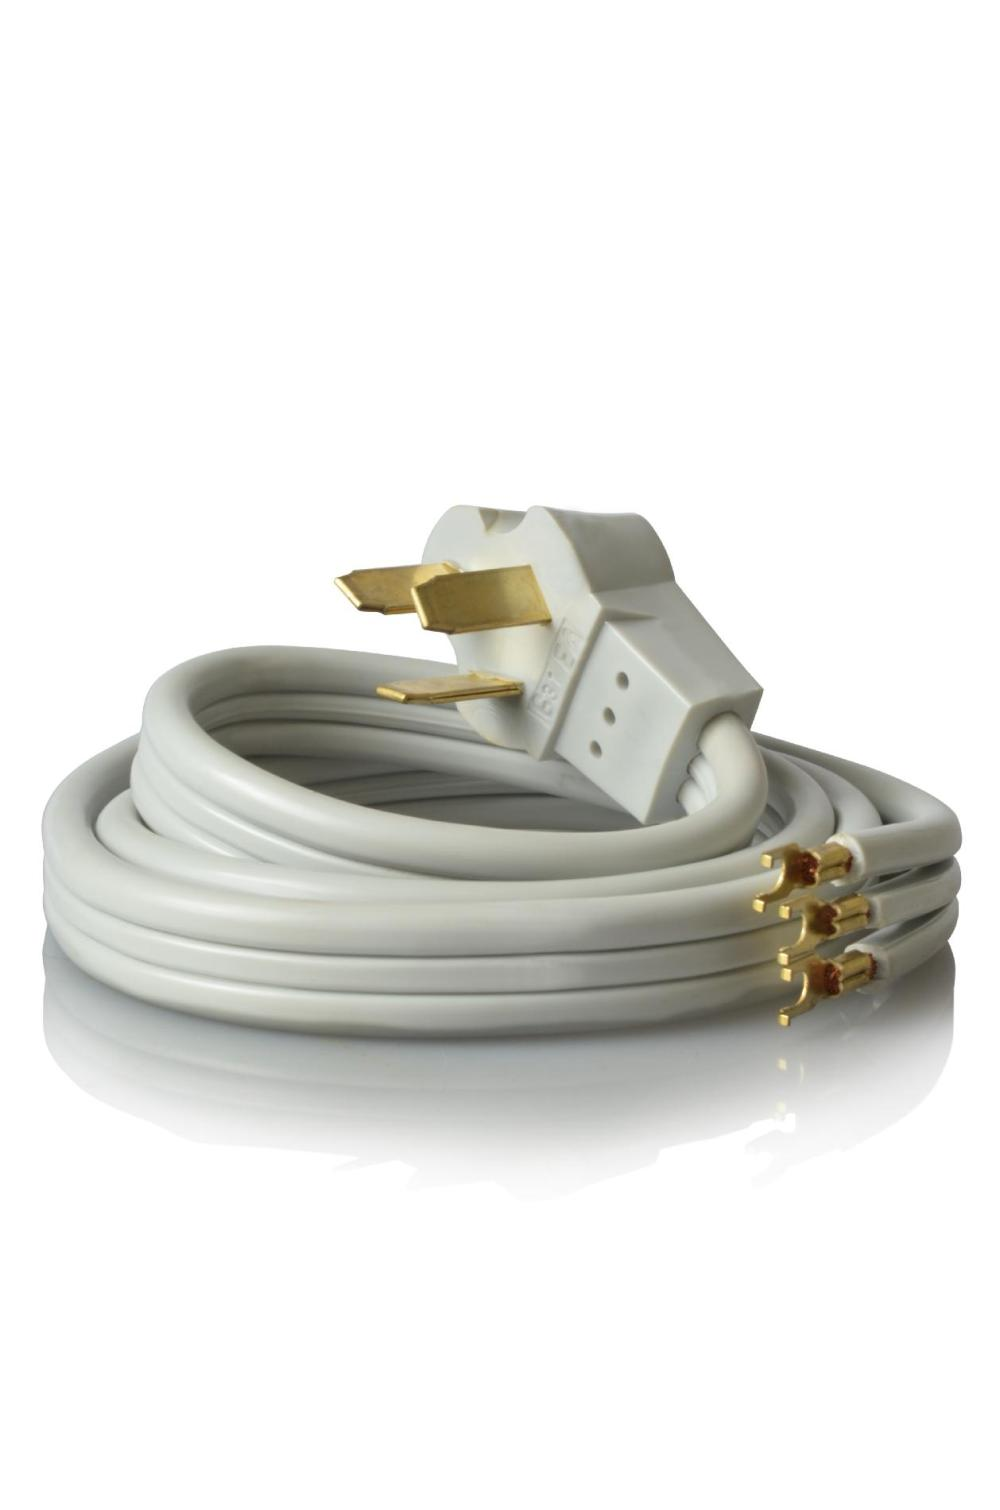 medium resolution of 3 prong dryer receptacle wiring